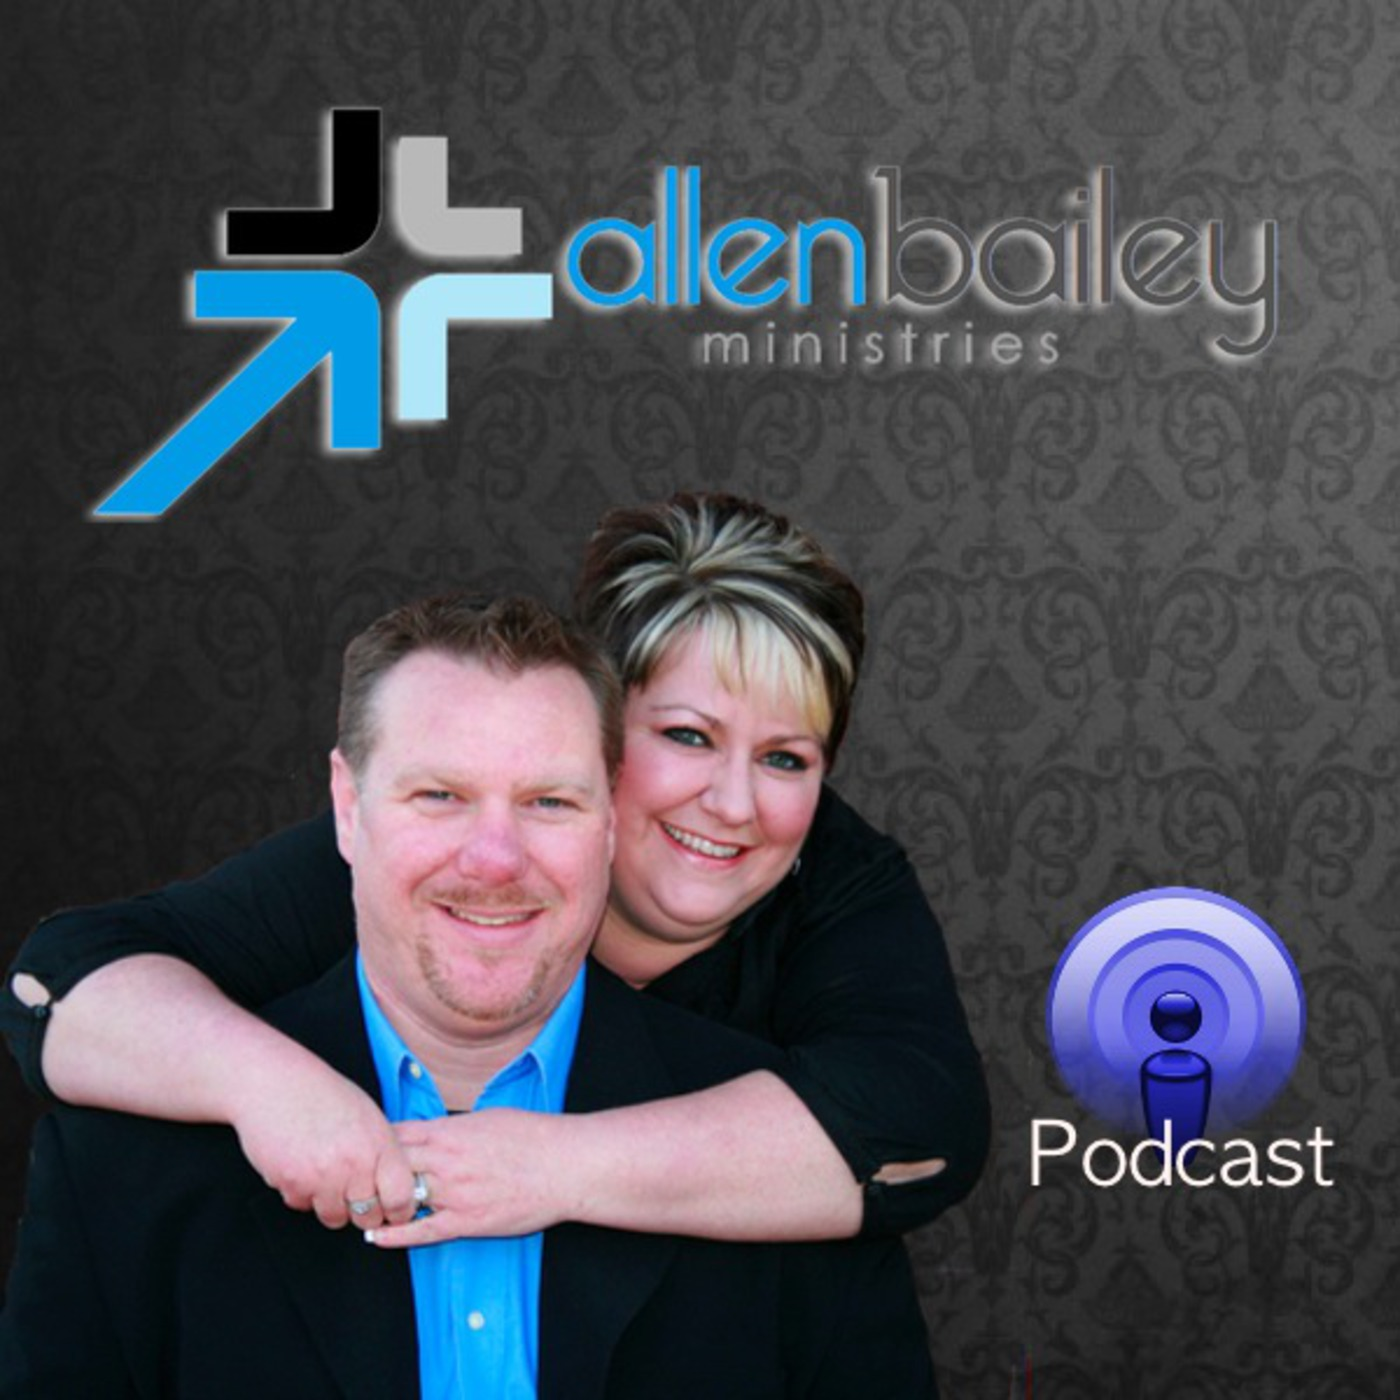 Allen Bailey Ministries